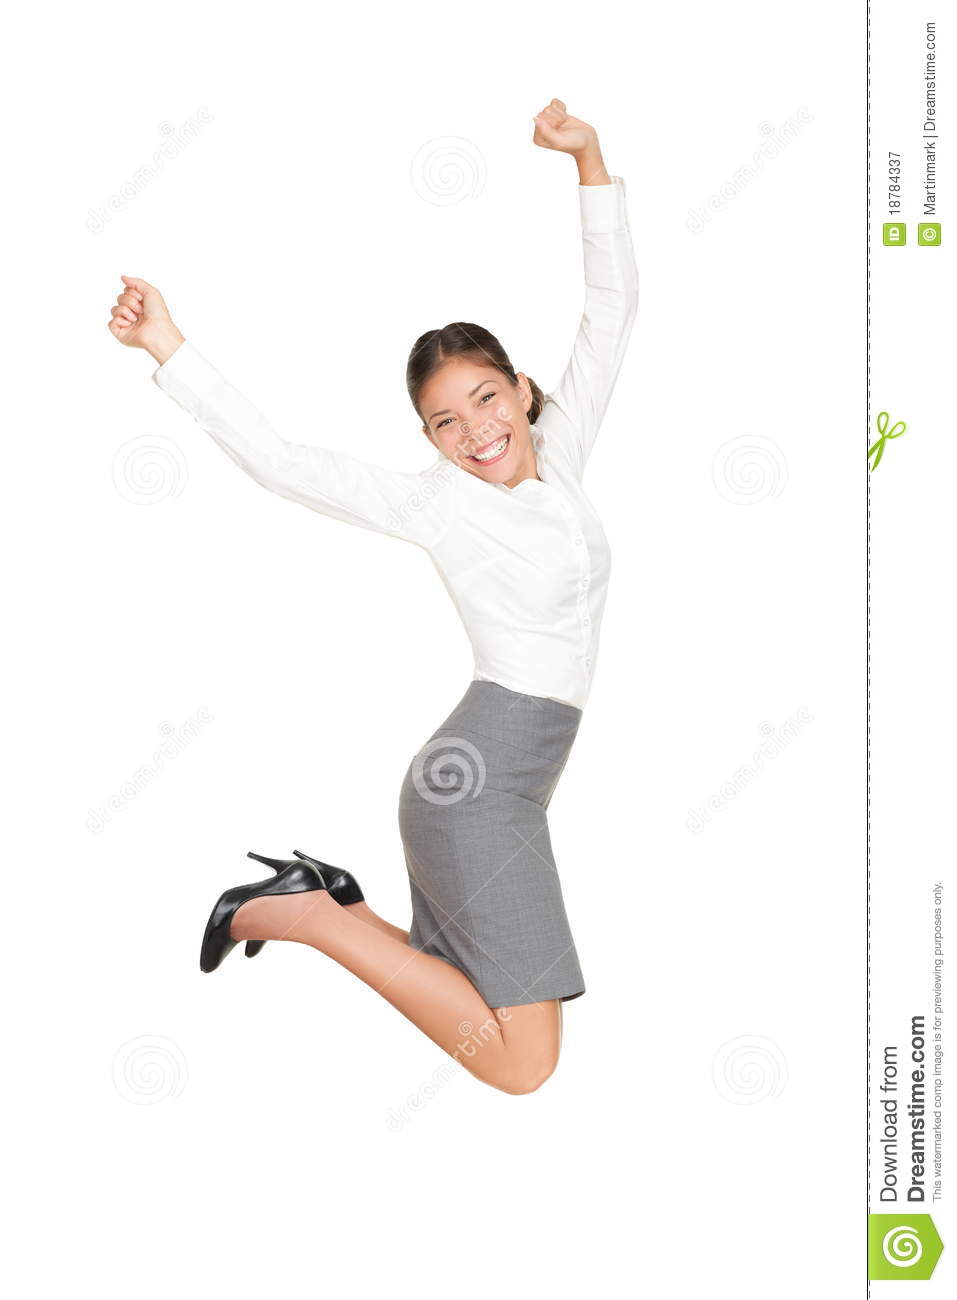 Business woman jumping in success